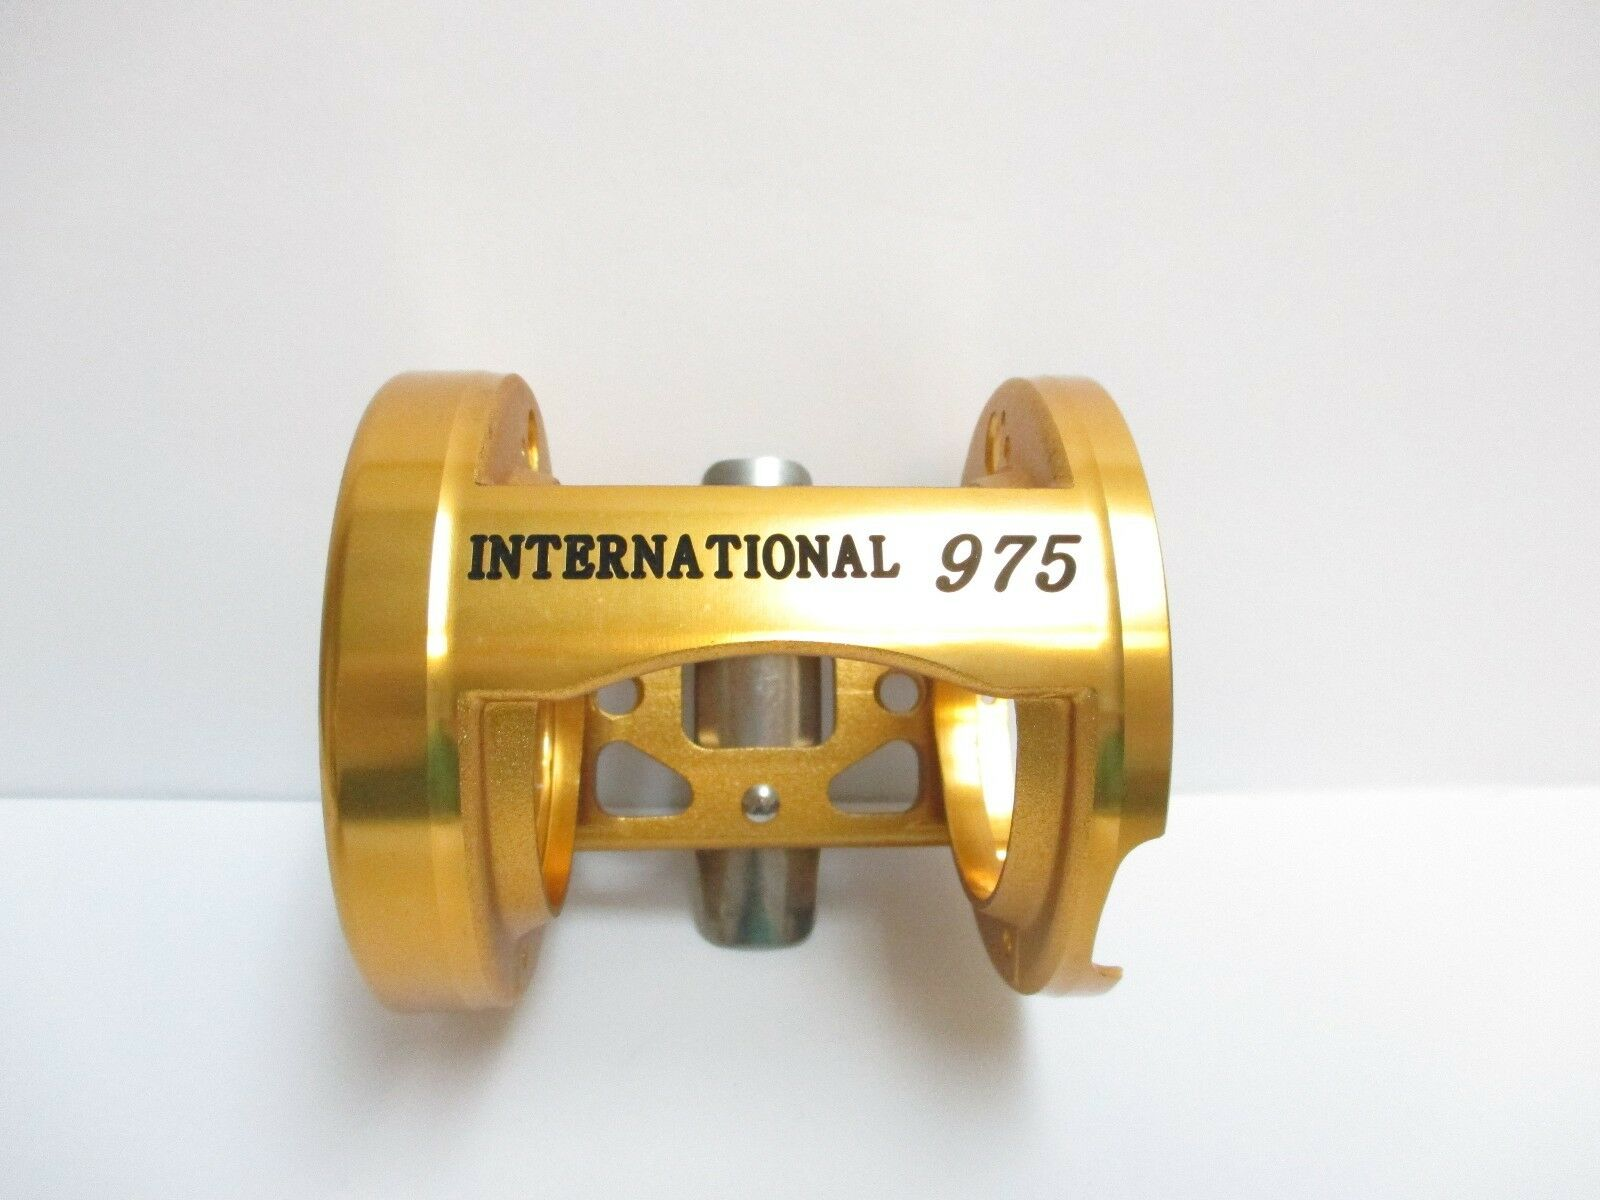 PENN CONVENTIONAL REEL REEL CONVENTIONAL PART - 183-975 International 975 - Frame 7bd5ec